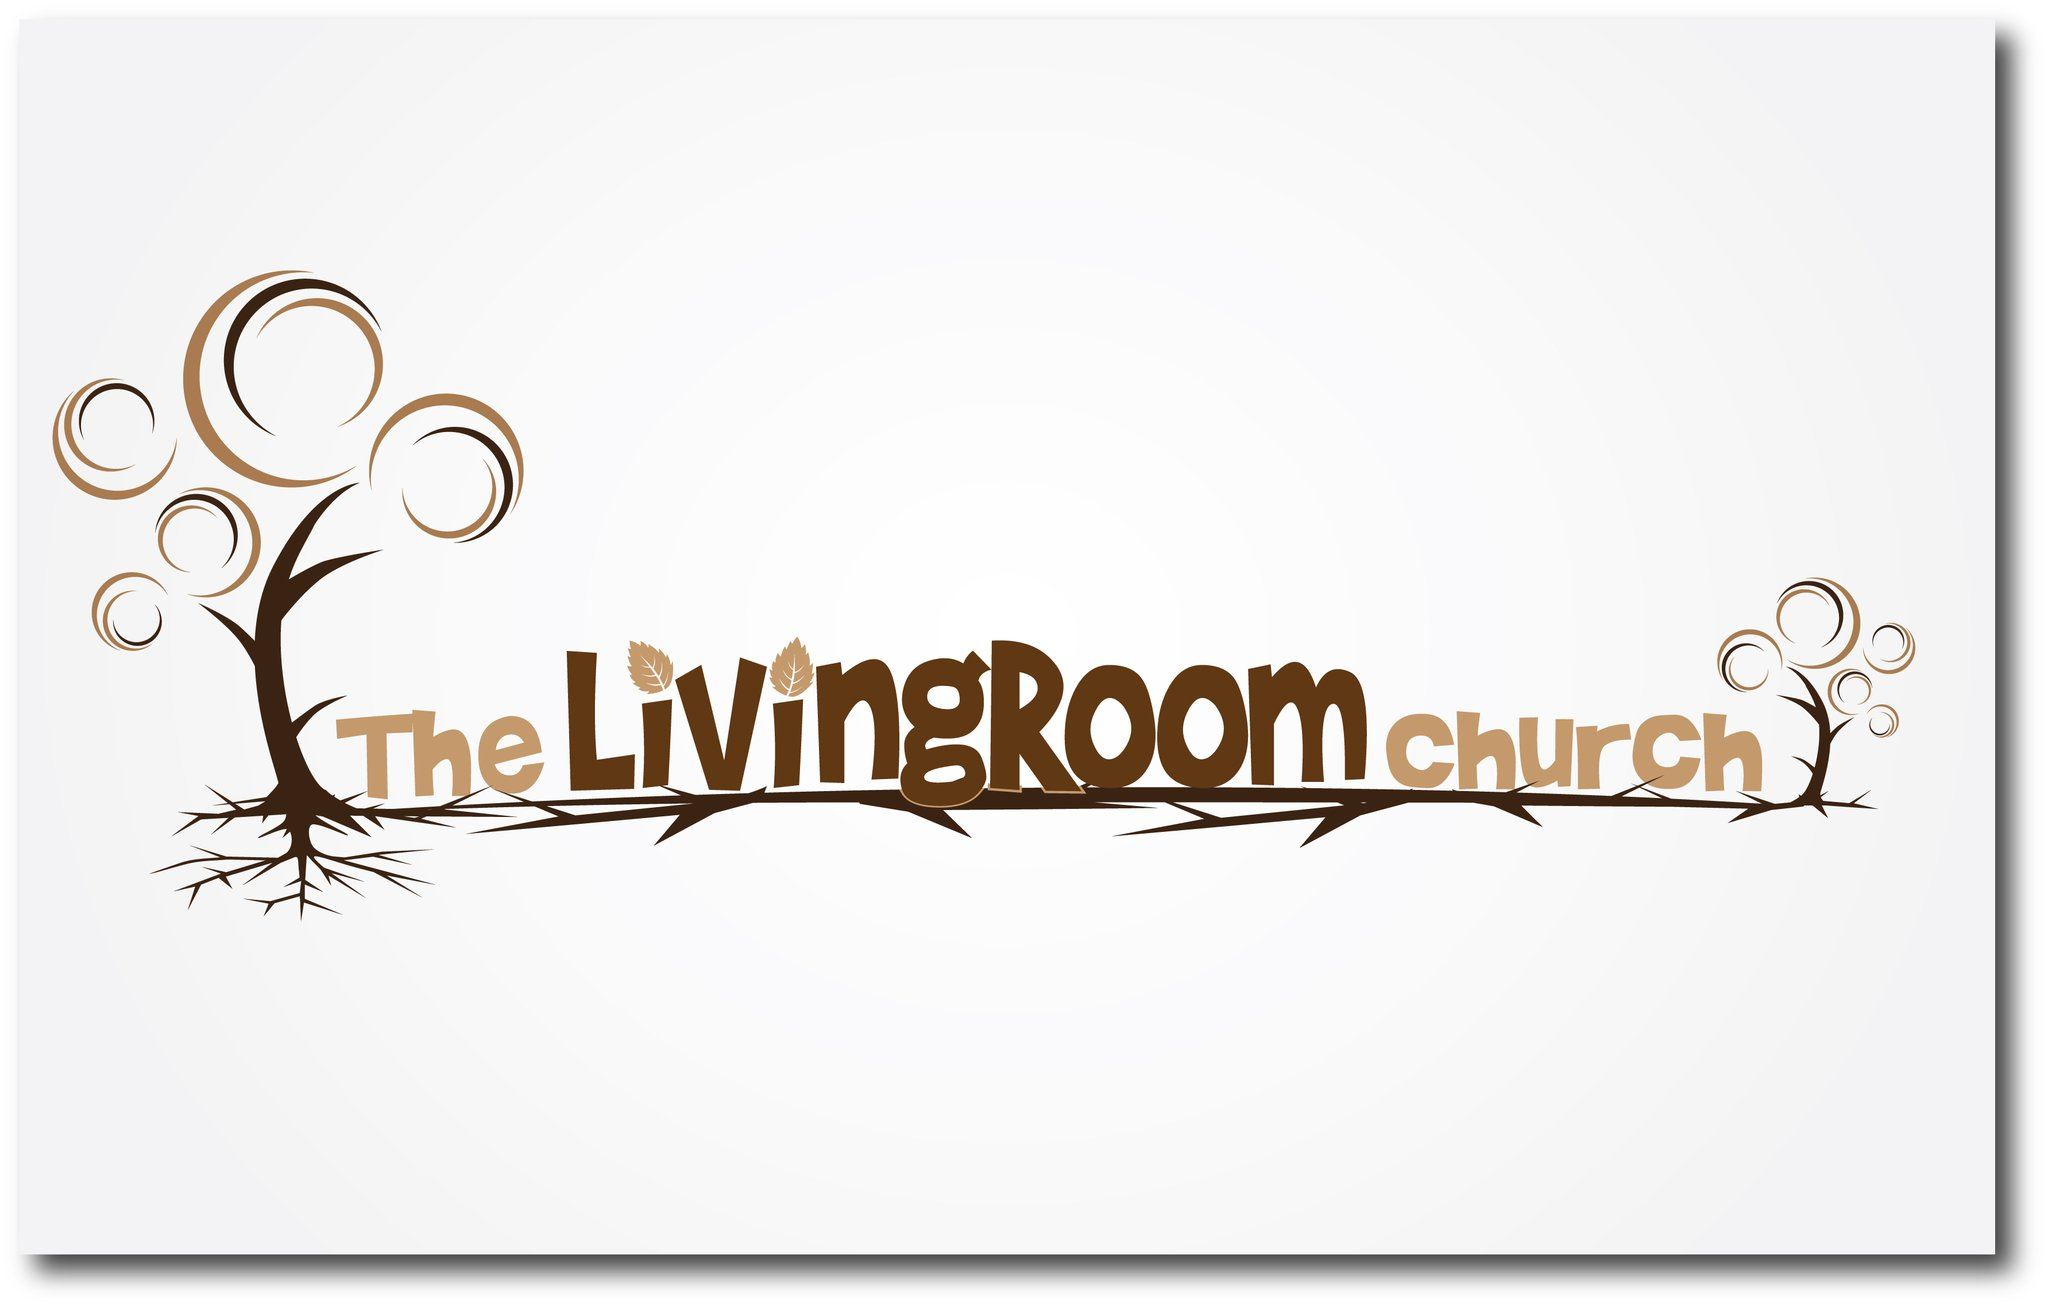 The Living Room Church church logo design: the livingroom church | foi designs